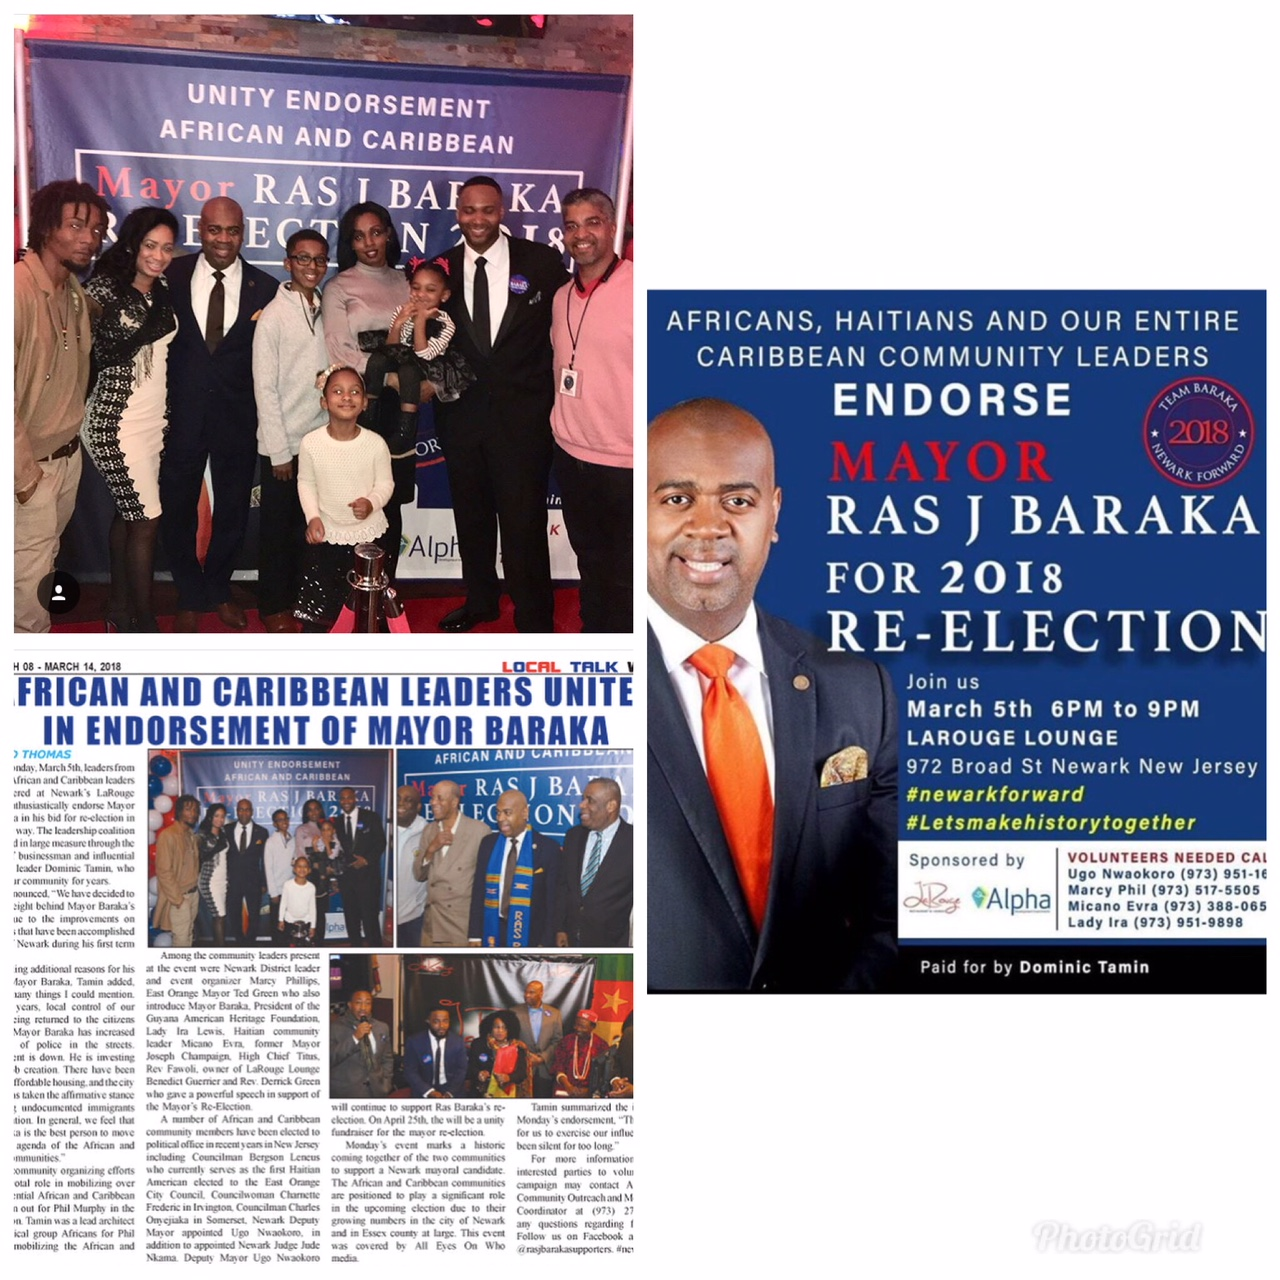 Assisted Creative Coordinating African & Caribbean Community Leaders of Newark, NJ endorsement of Mayor Ras J. Baraka.